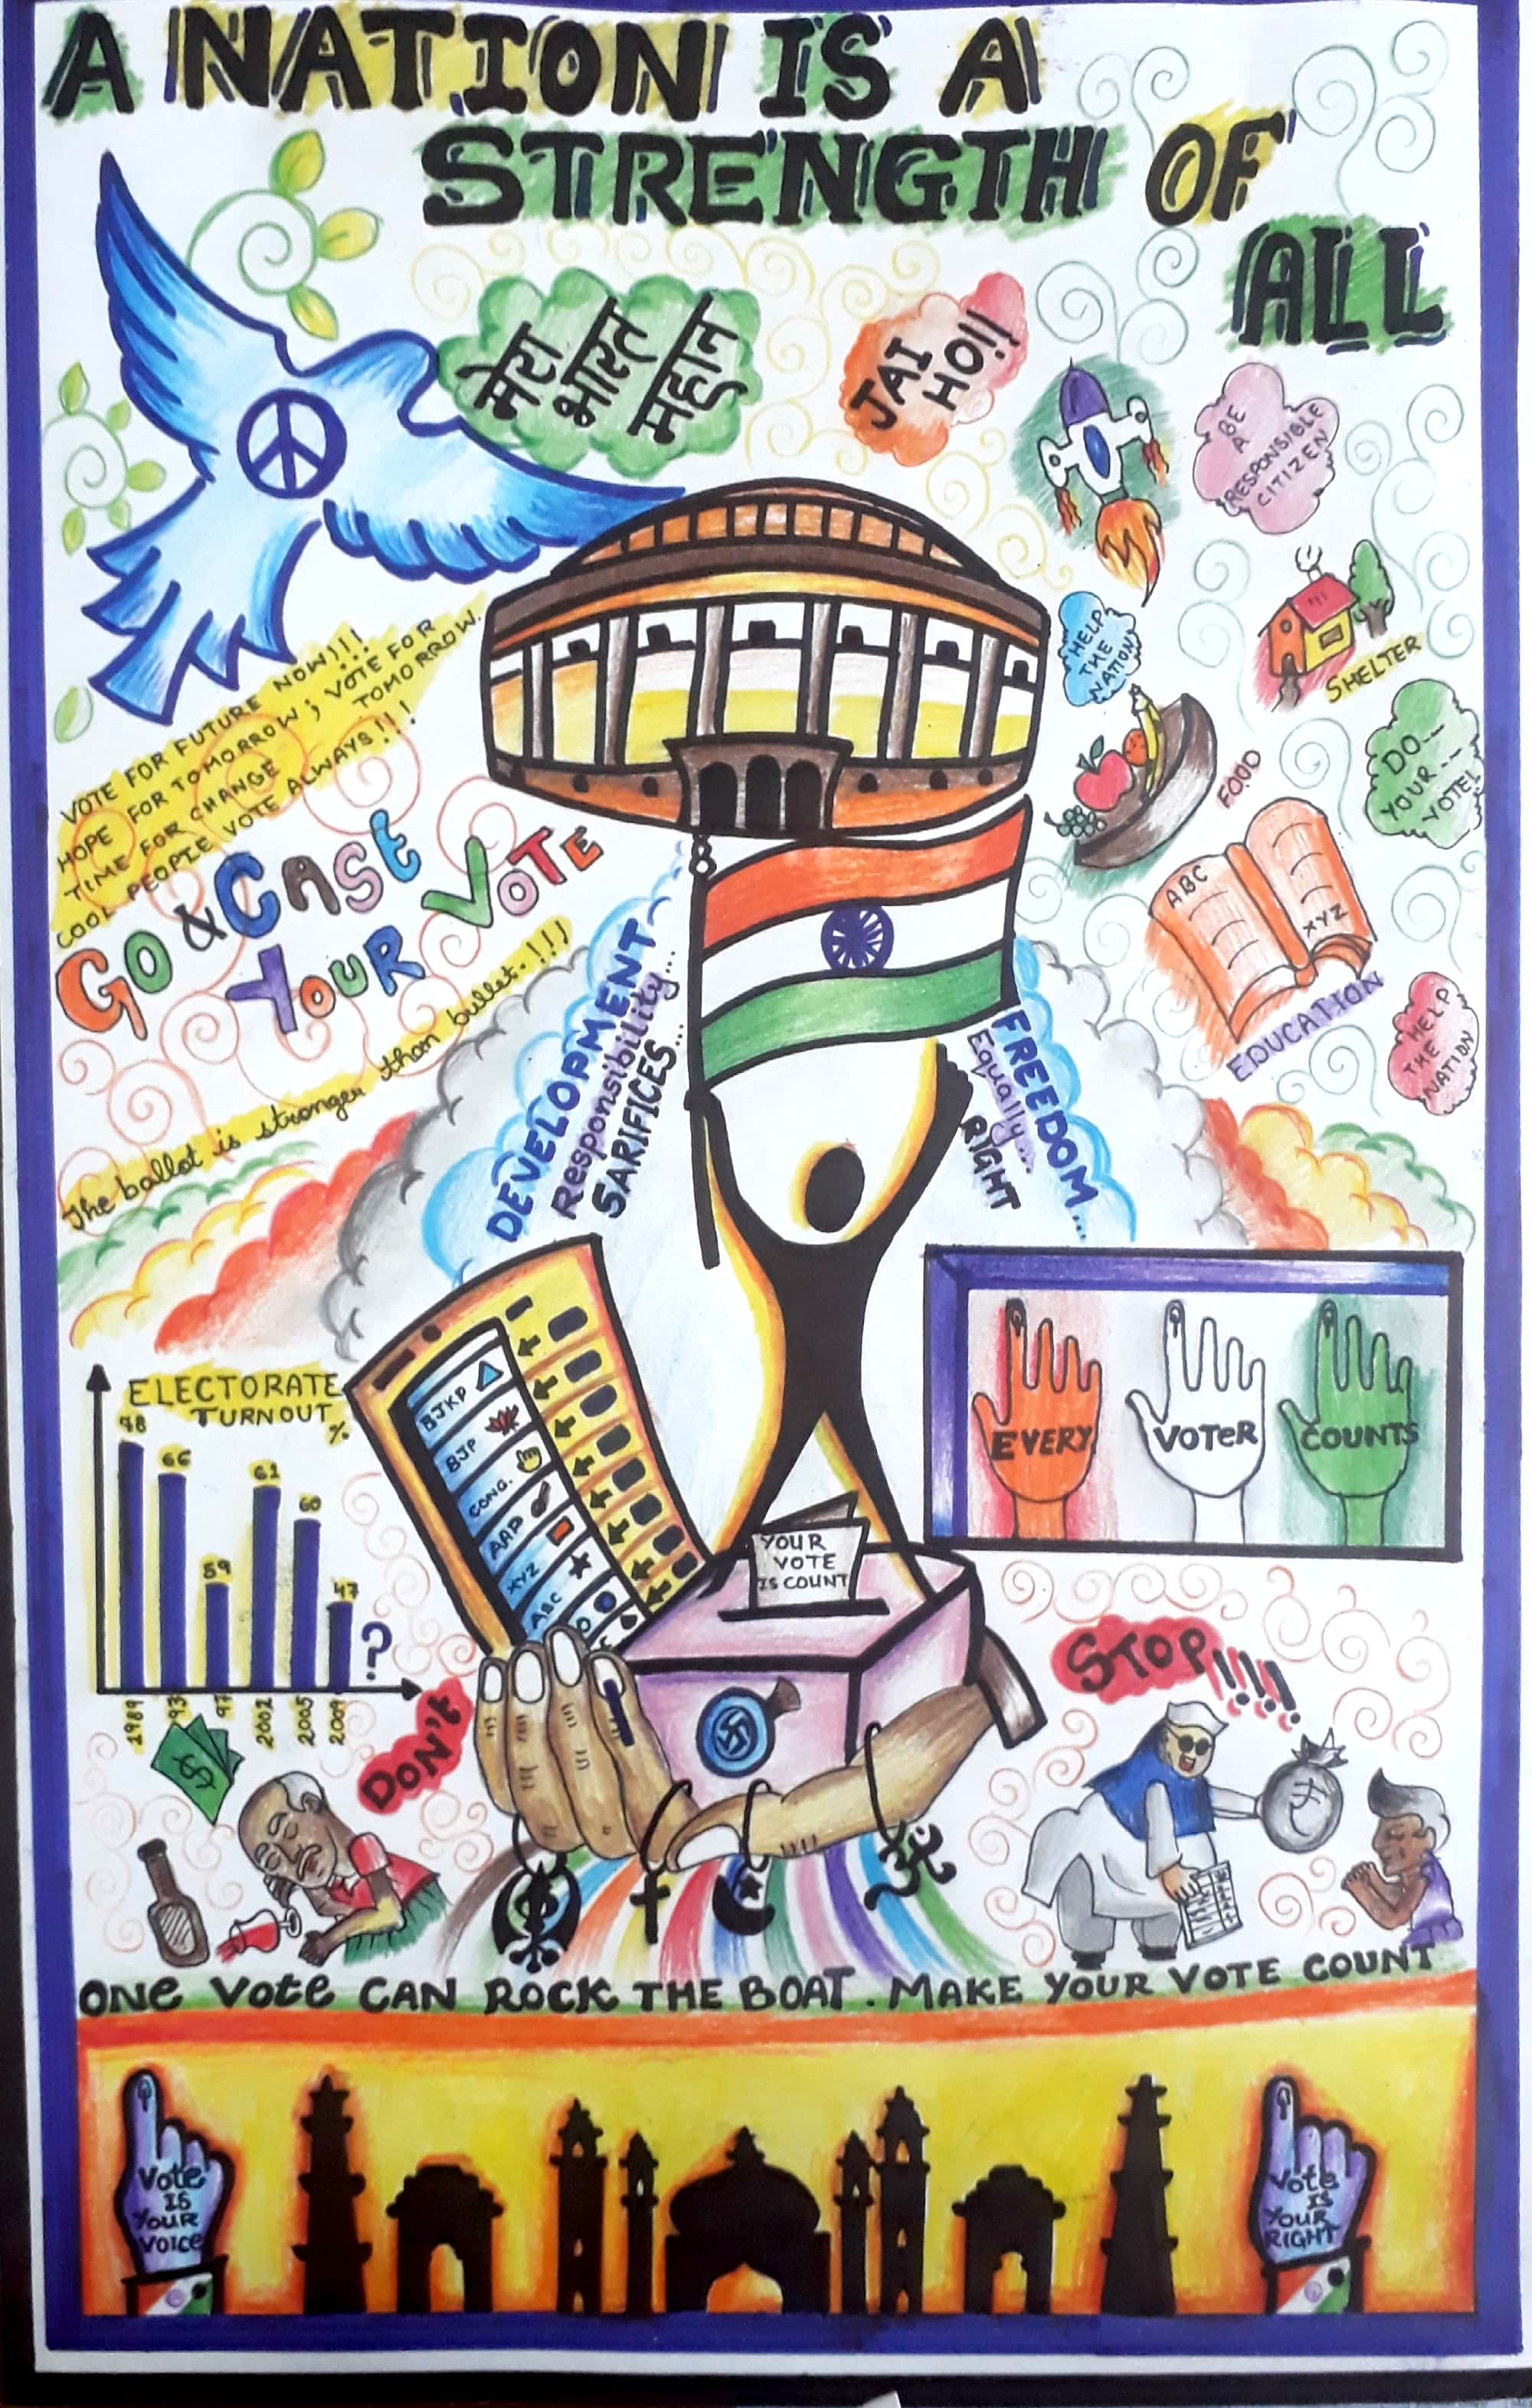 Winners of Poster Making Competition